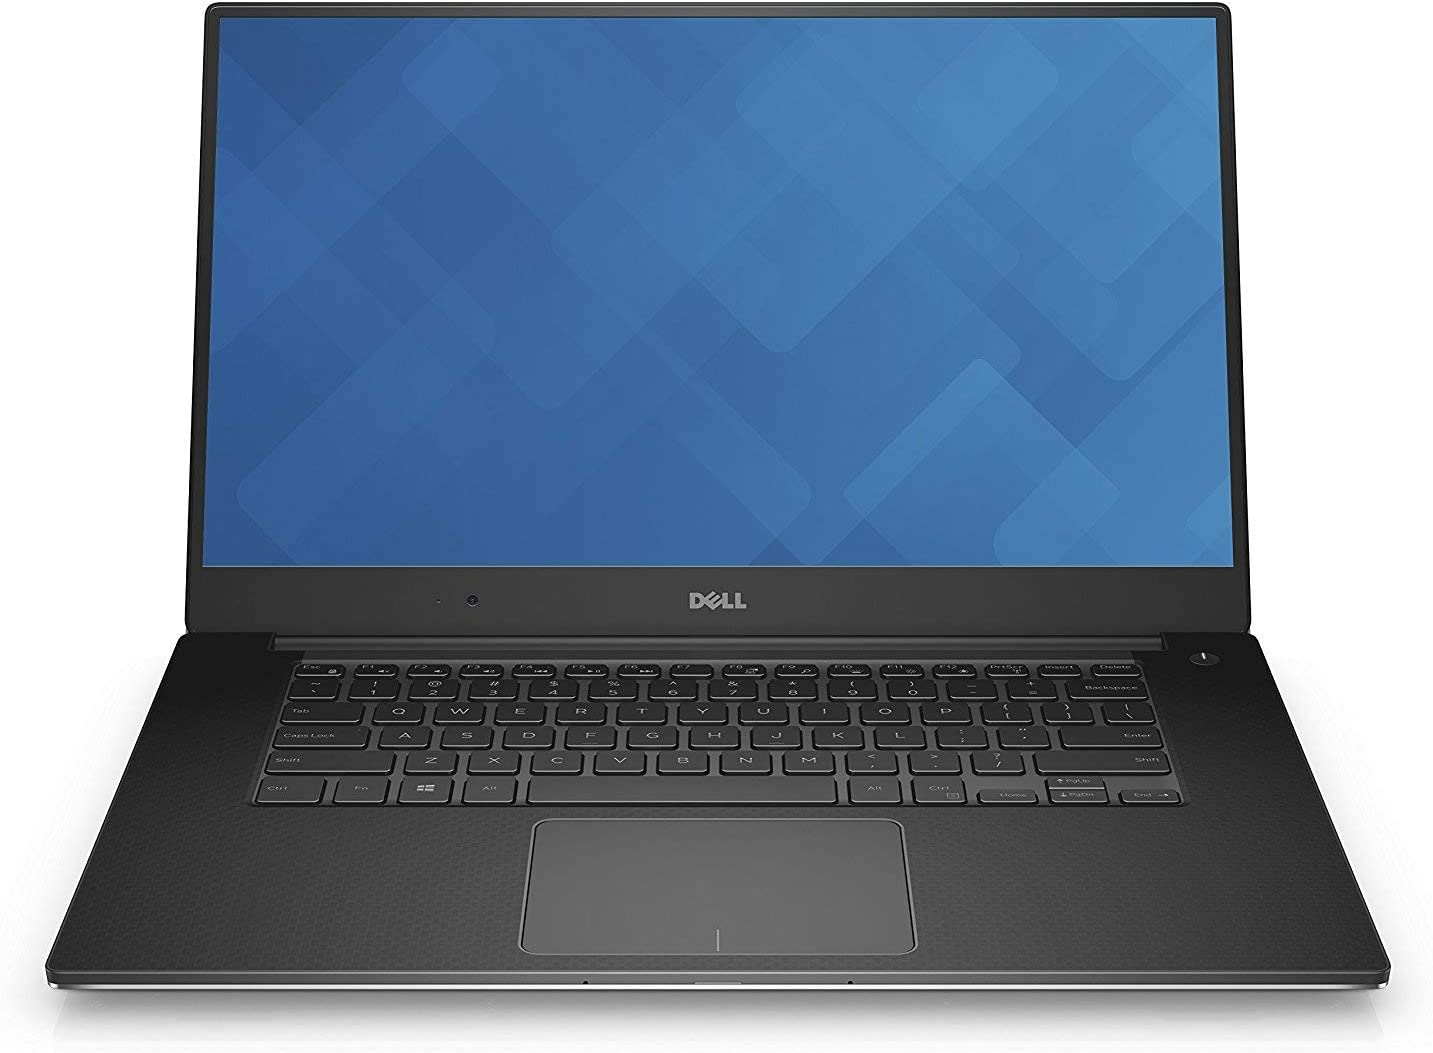 Dell Precision 5510 15.6in Laptop, Core i7-6820HQ 2.7GHz, 8GB RAM, 256GB Solid State Drive, Win10P64, FHD, CAM (Renewed)